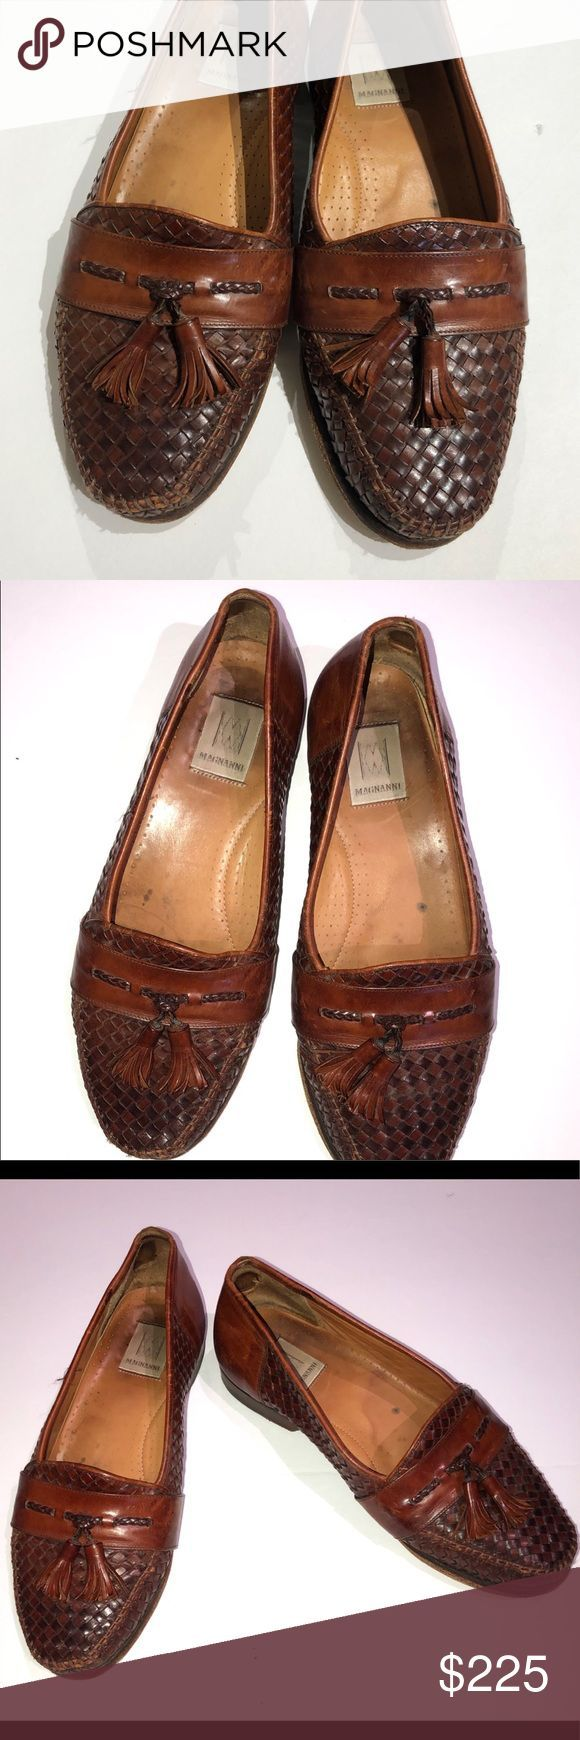 Magnanni Loafers Men's 10 Men's size 10 used Magnanni Loafers. Still in grea...